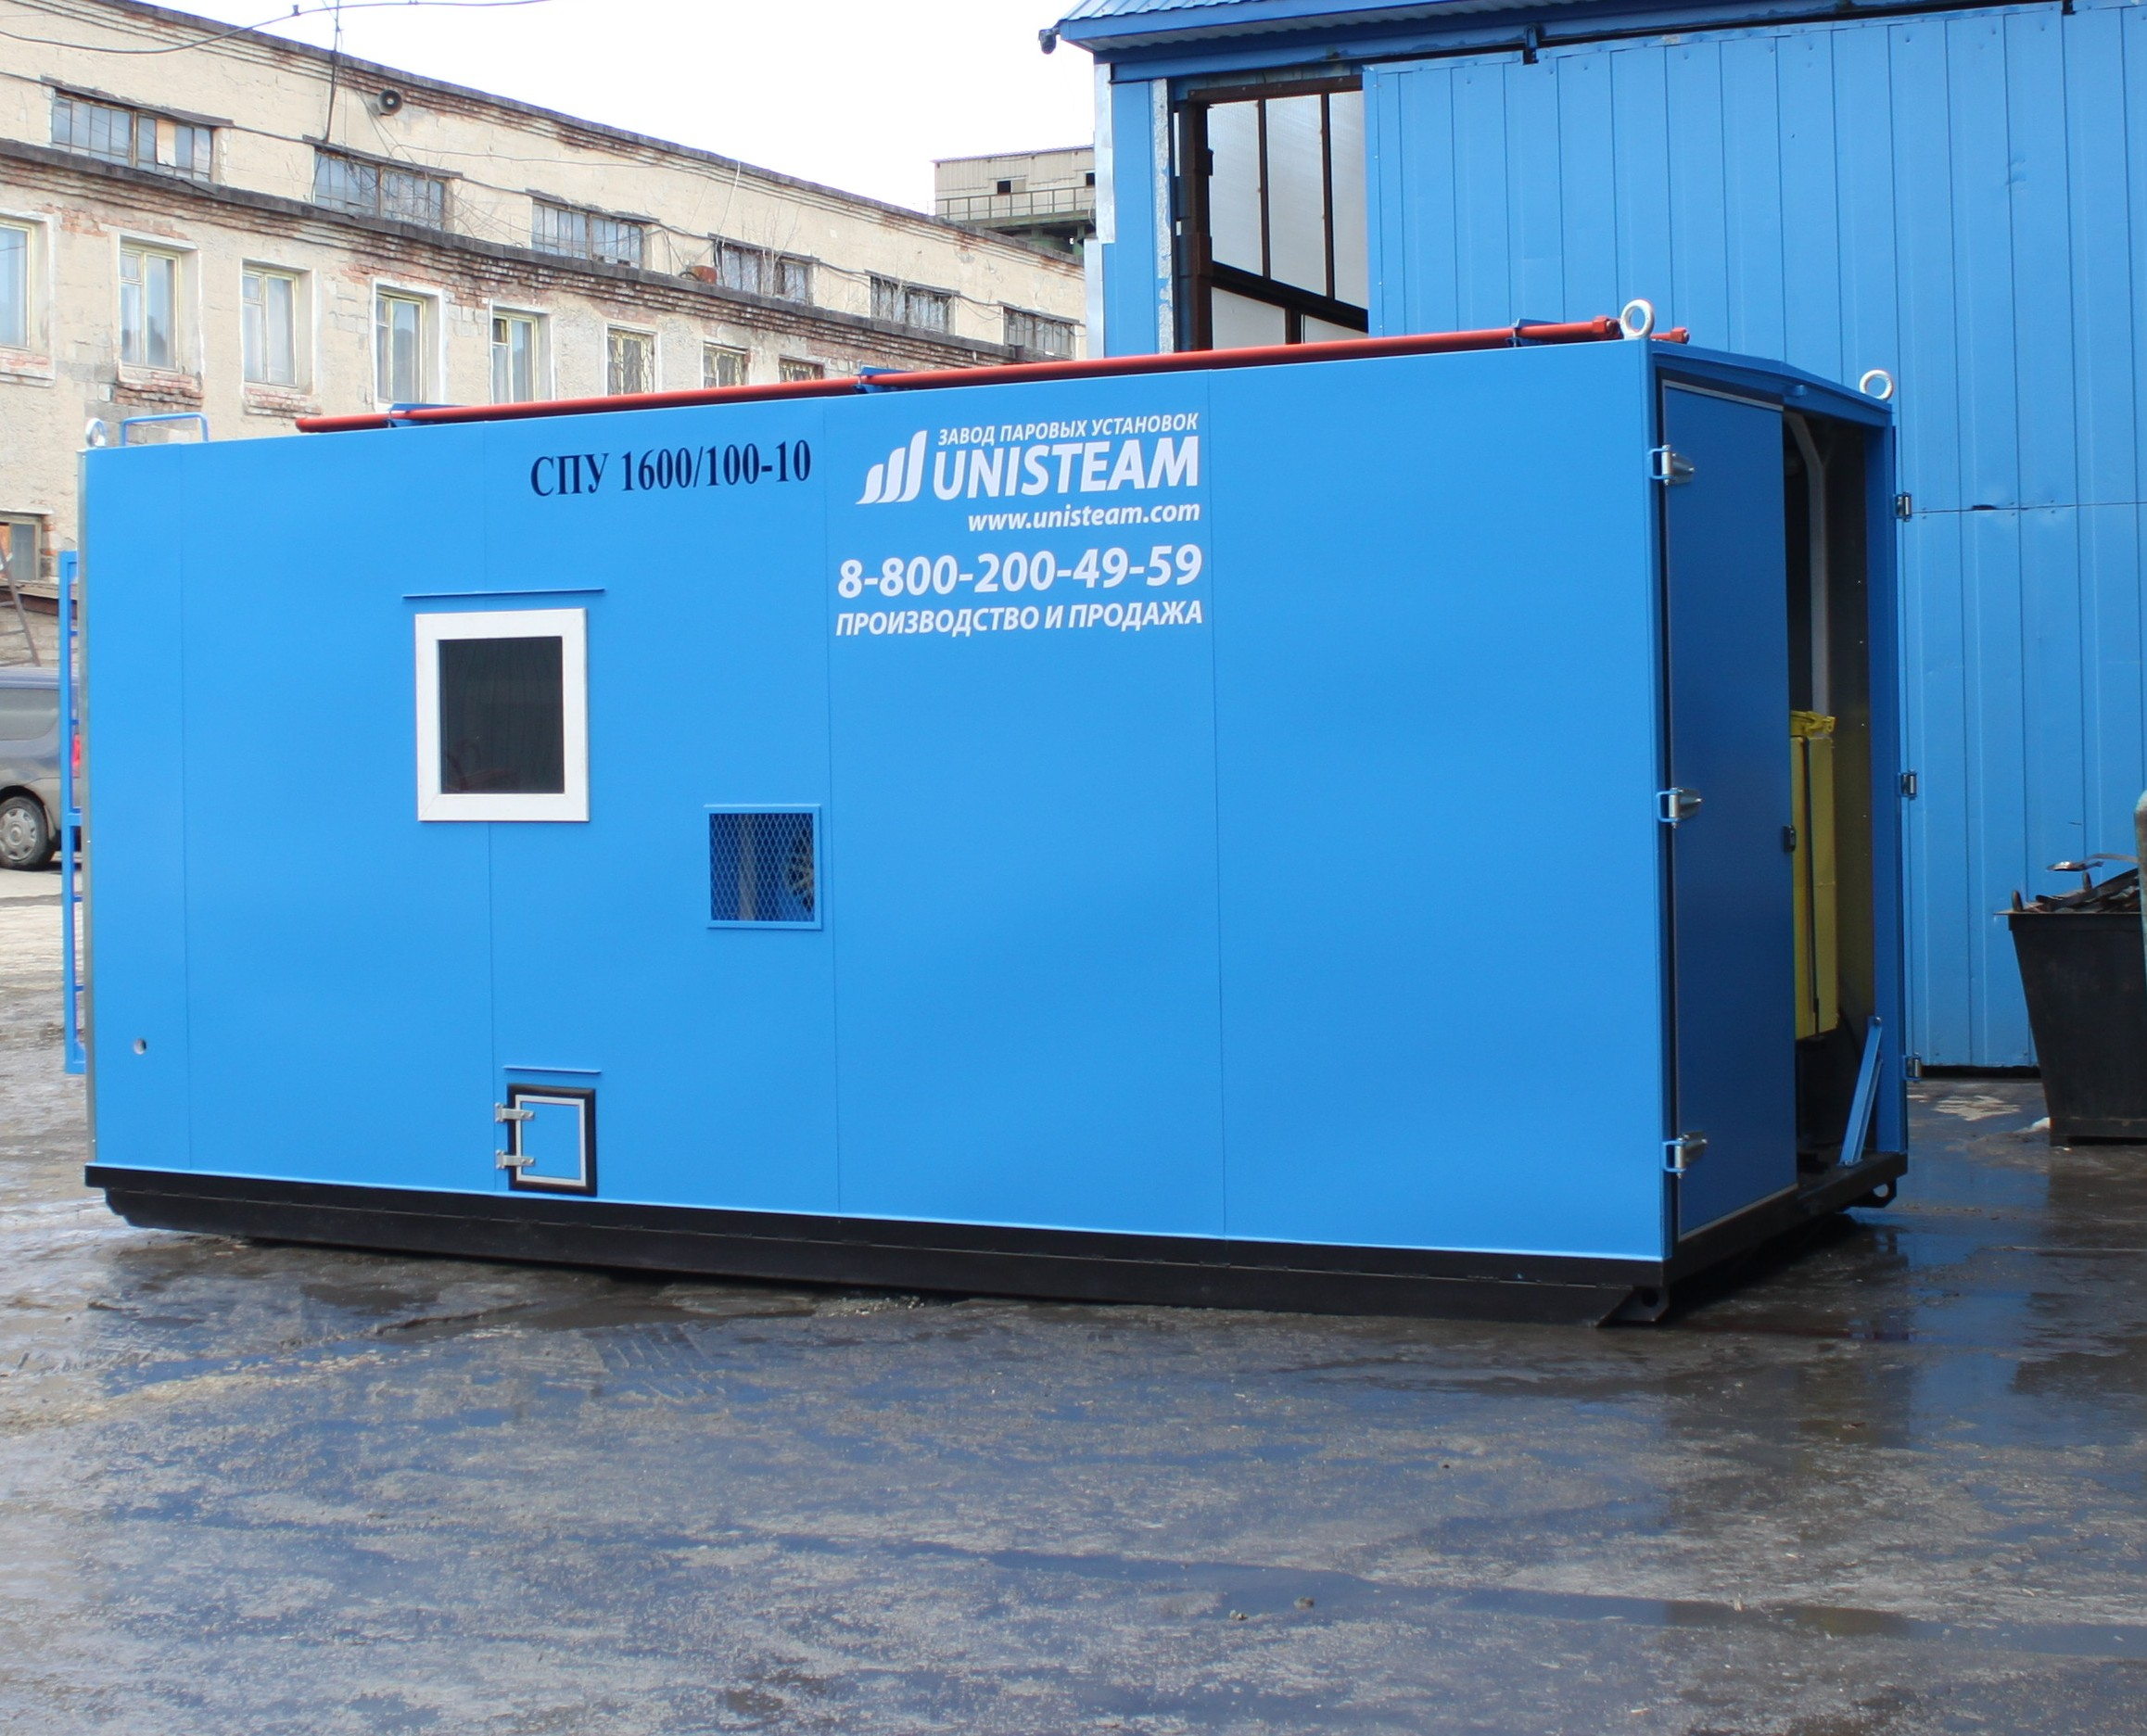 UNISTEAM-S2 1600/100 steam boiler house for oil extraction, heating, cleaning, warming up, hot water